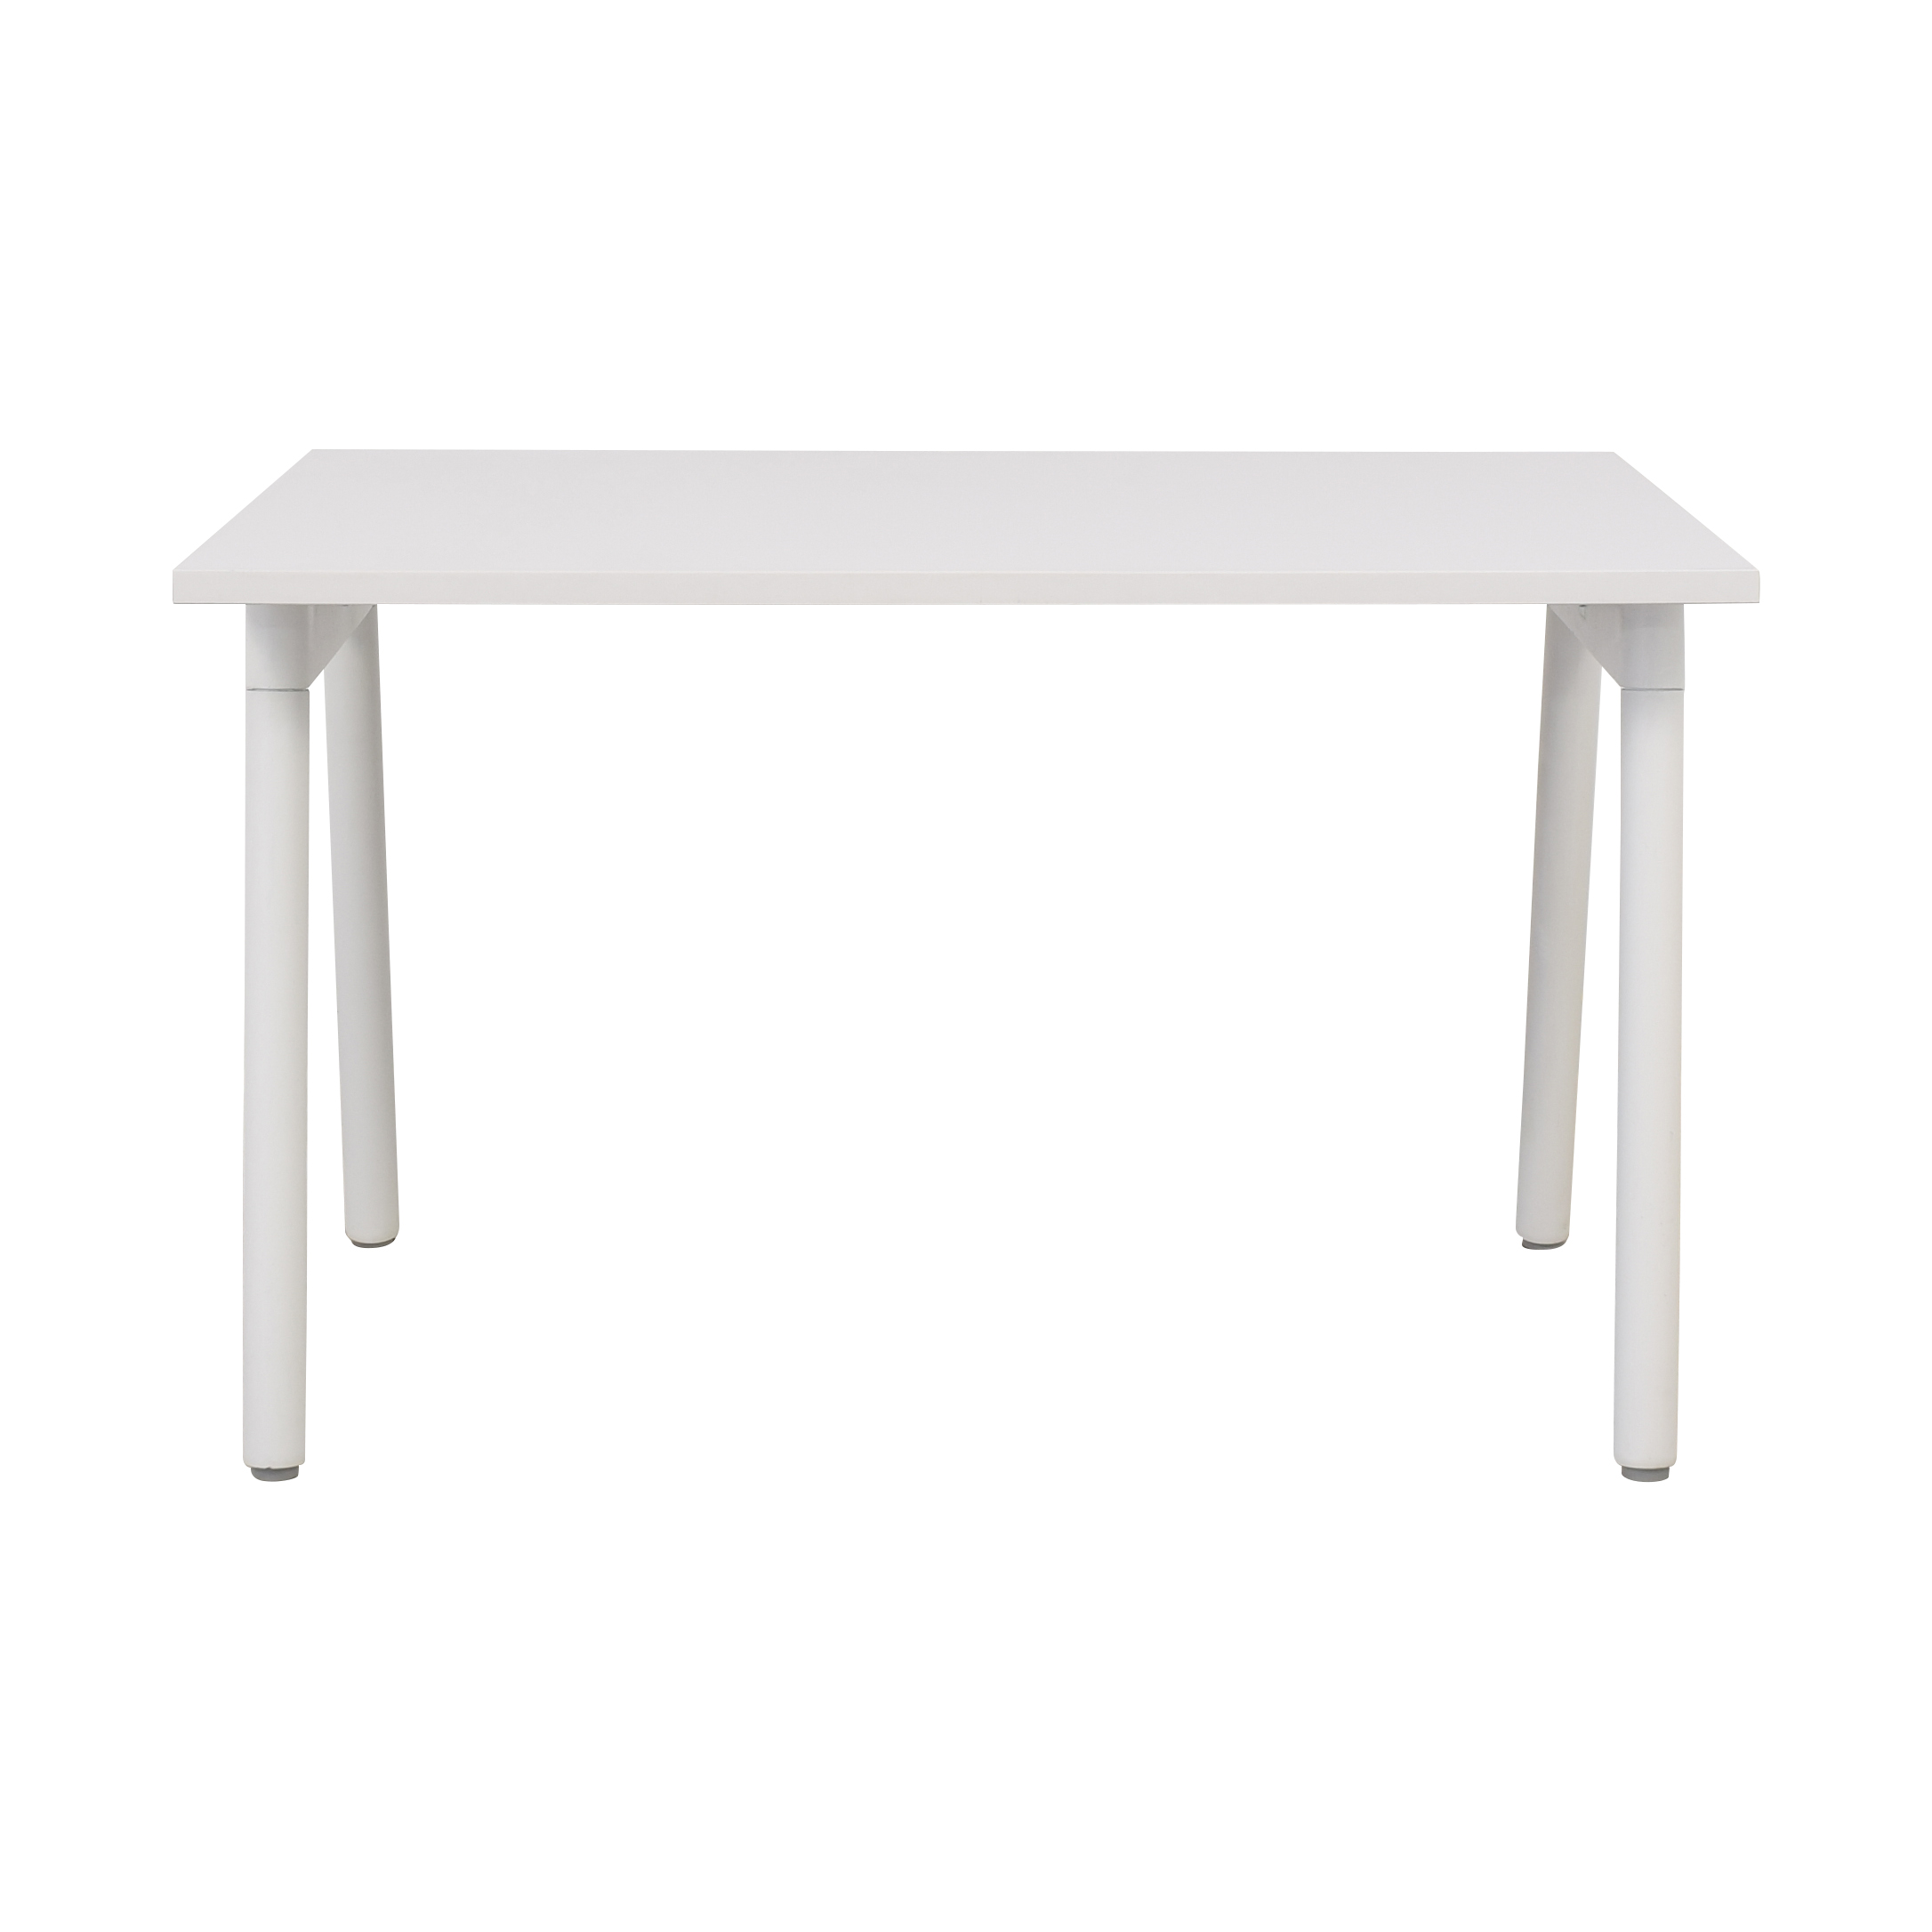 Poppin Poppin Series A Single Desk white